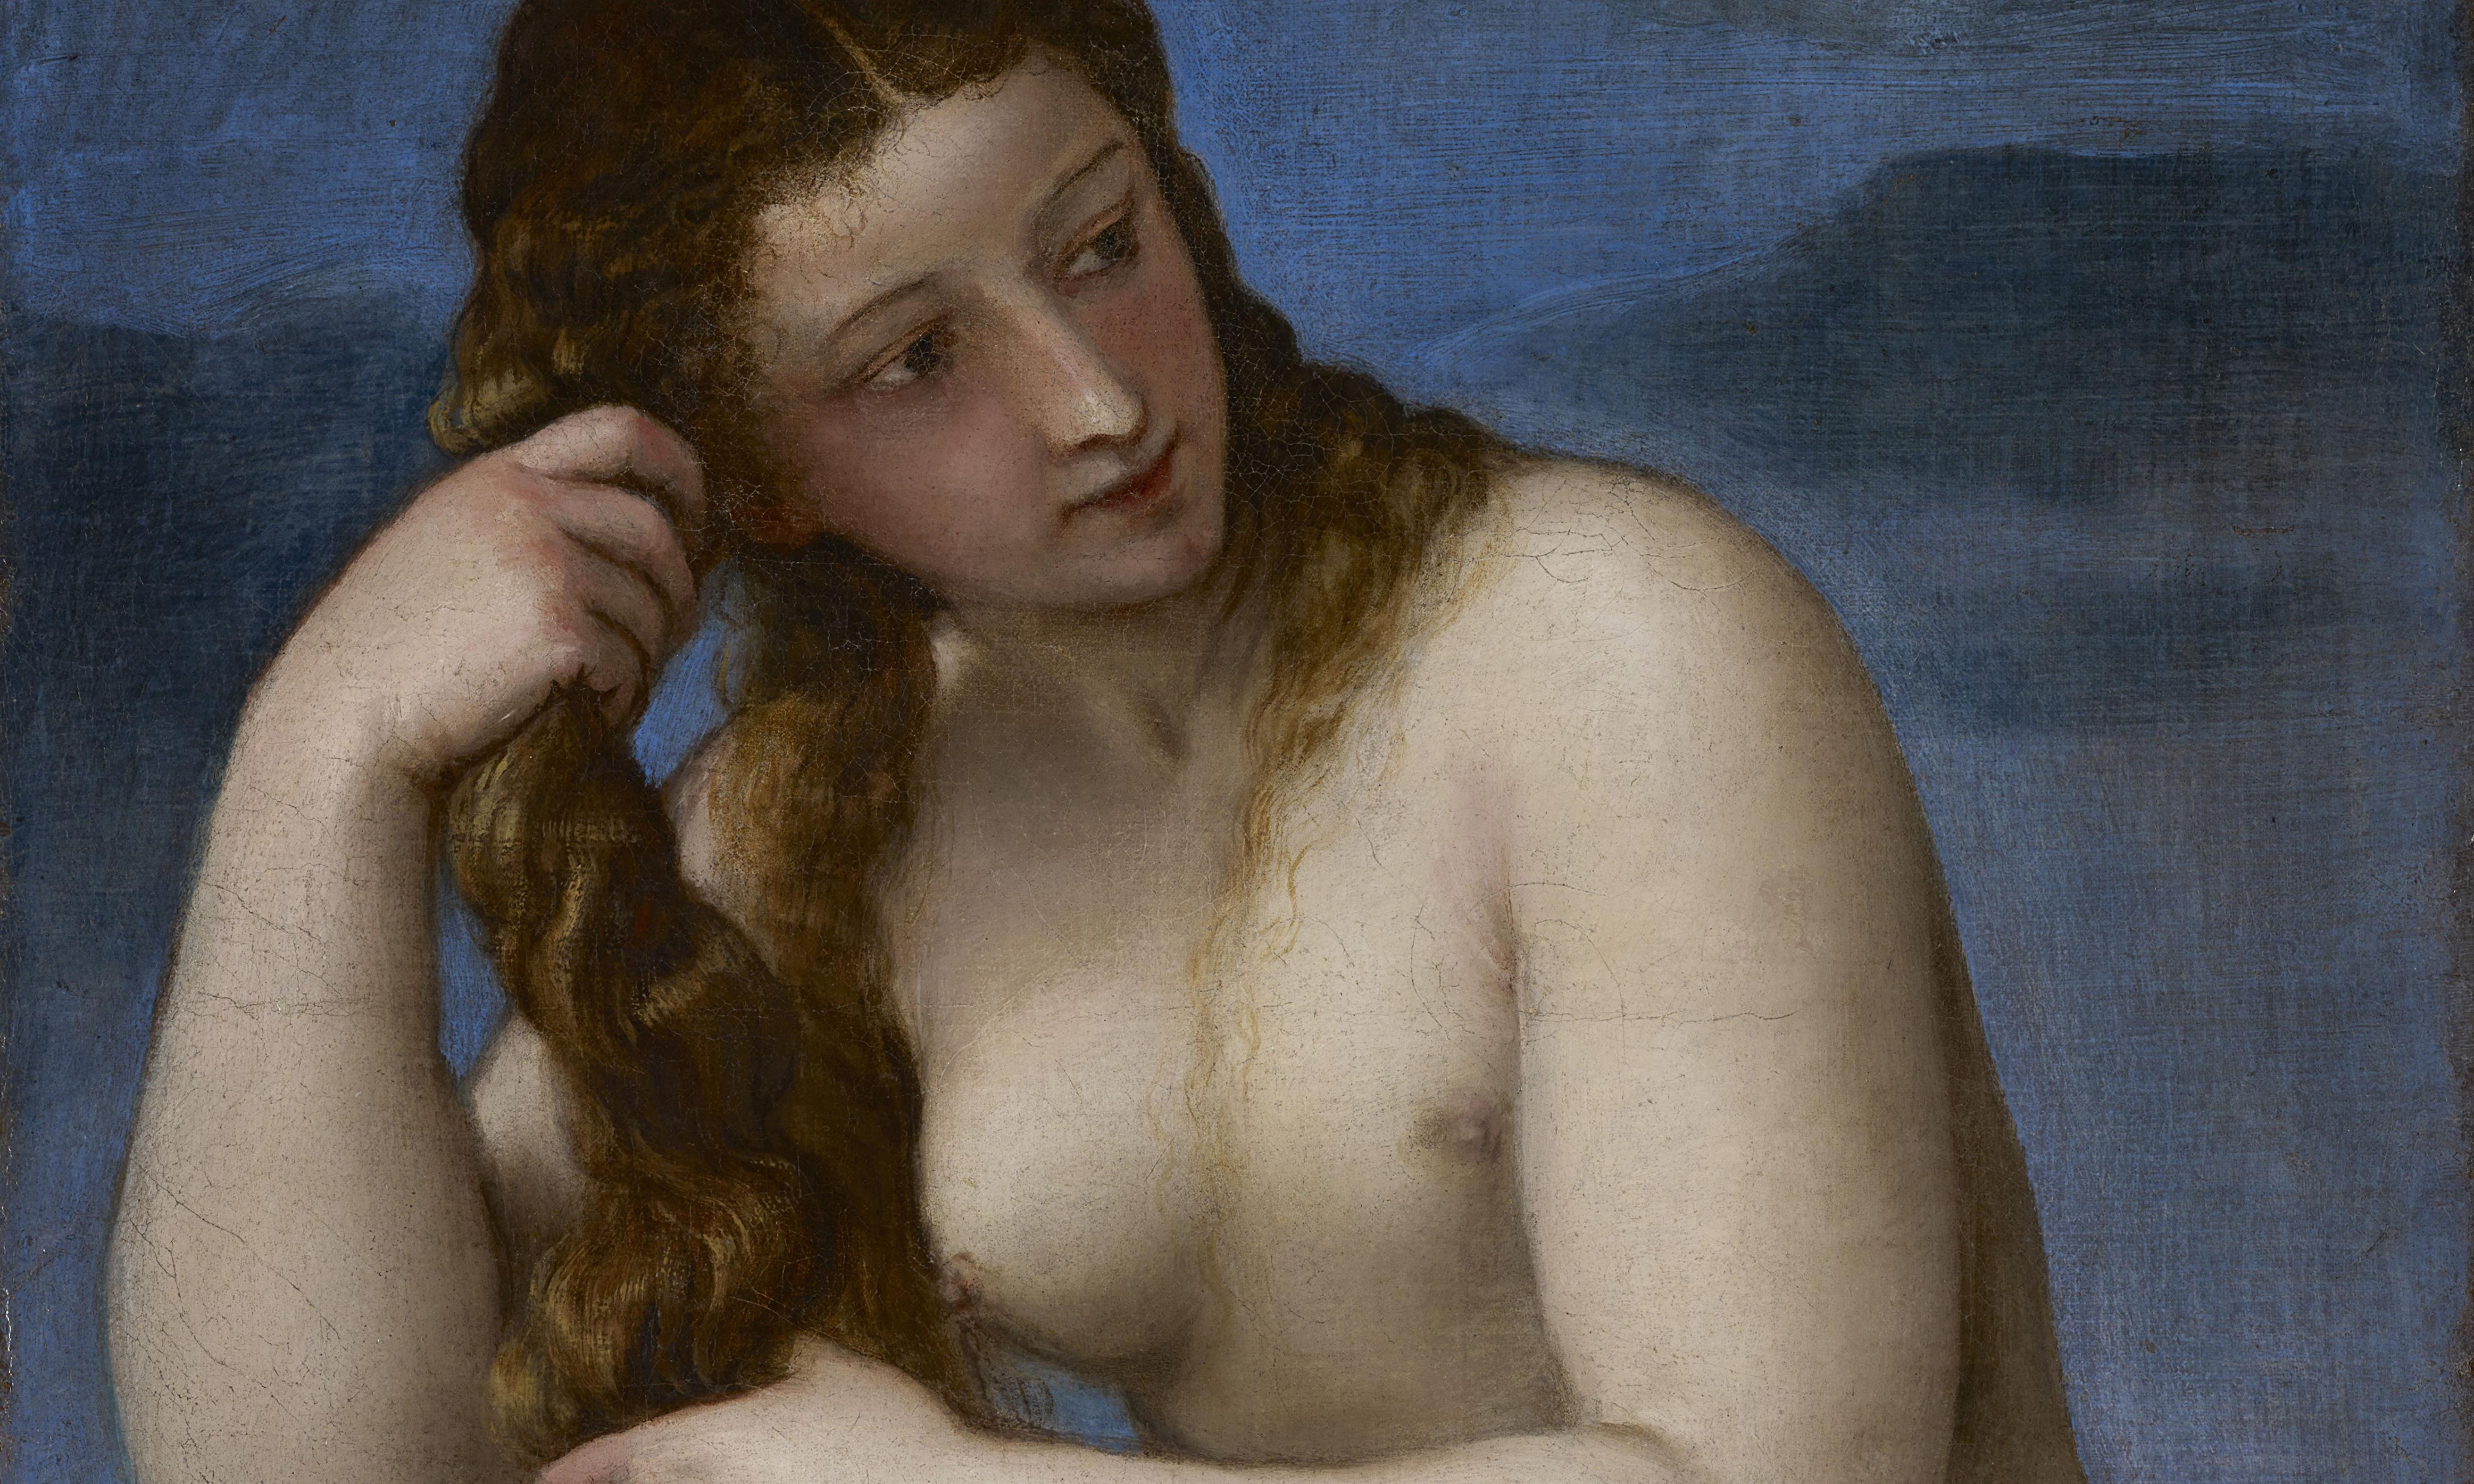 Skin in the game: do we need to take down nudes – or look at them harder?